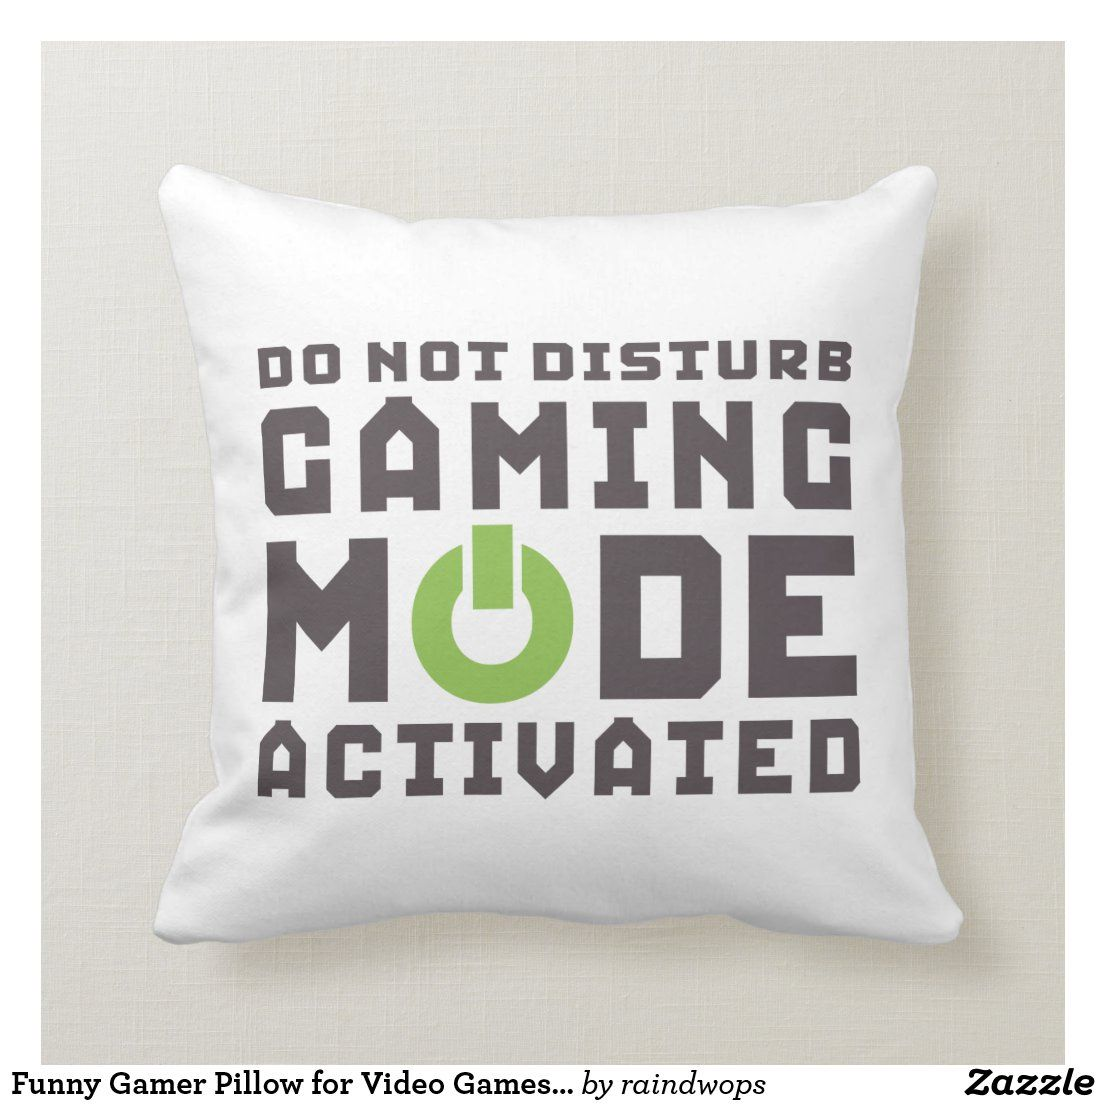 Cool and fun pillow with funny and humorous gamer quotes. Do not disturb. Gaming mode activated. Perfect gift for video games lovers, gaming pro, gamer, your geek and nerd friends.